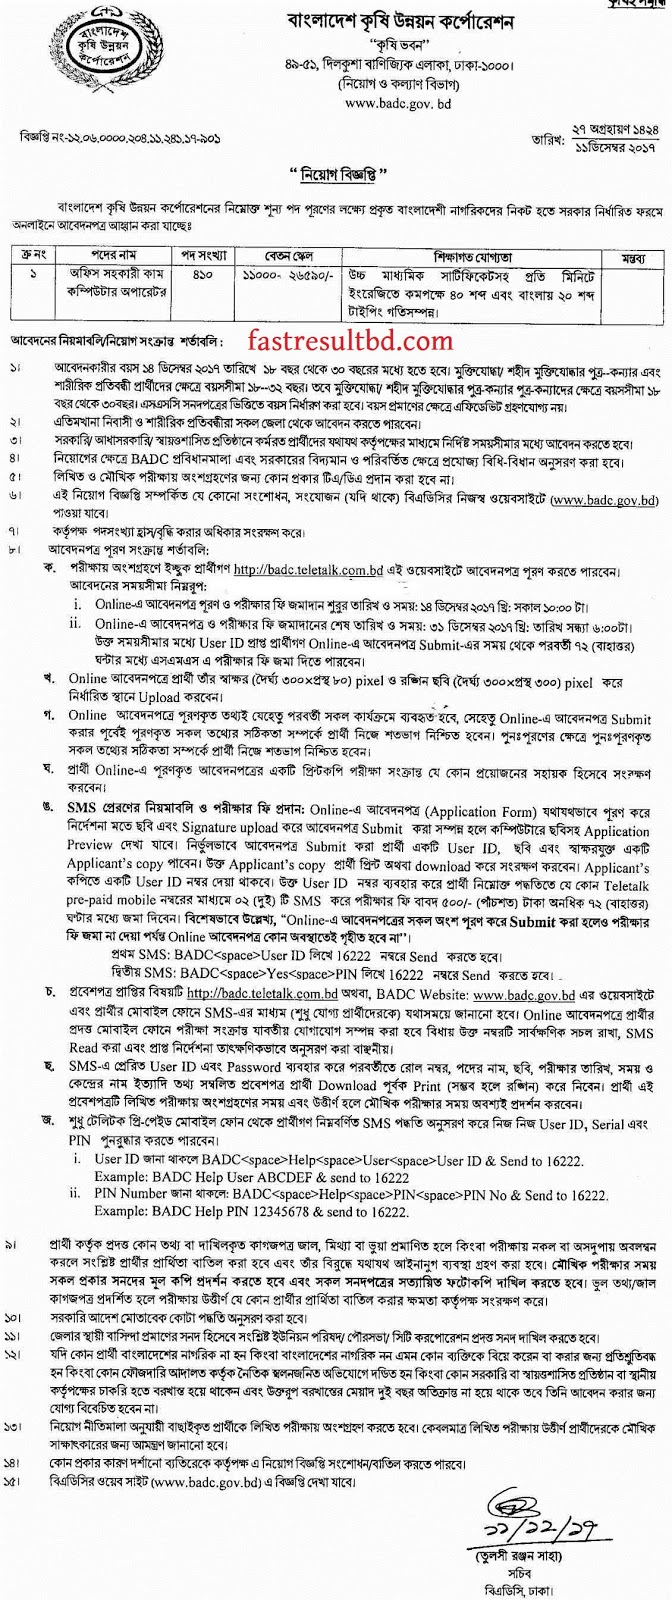 Bangladesh Agricultural Development Corporation Job Circular 2017